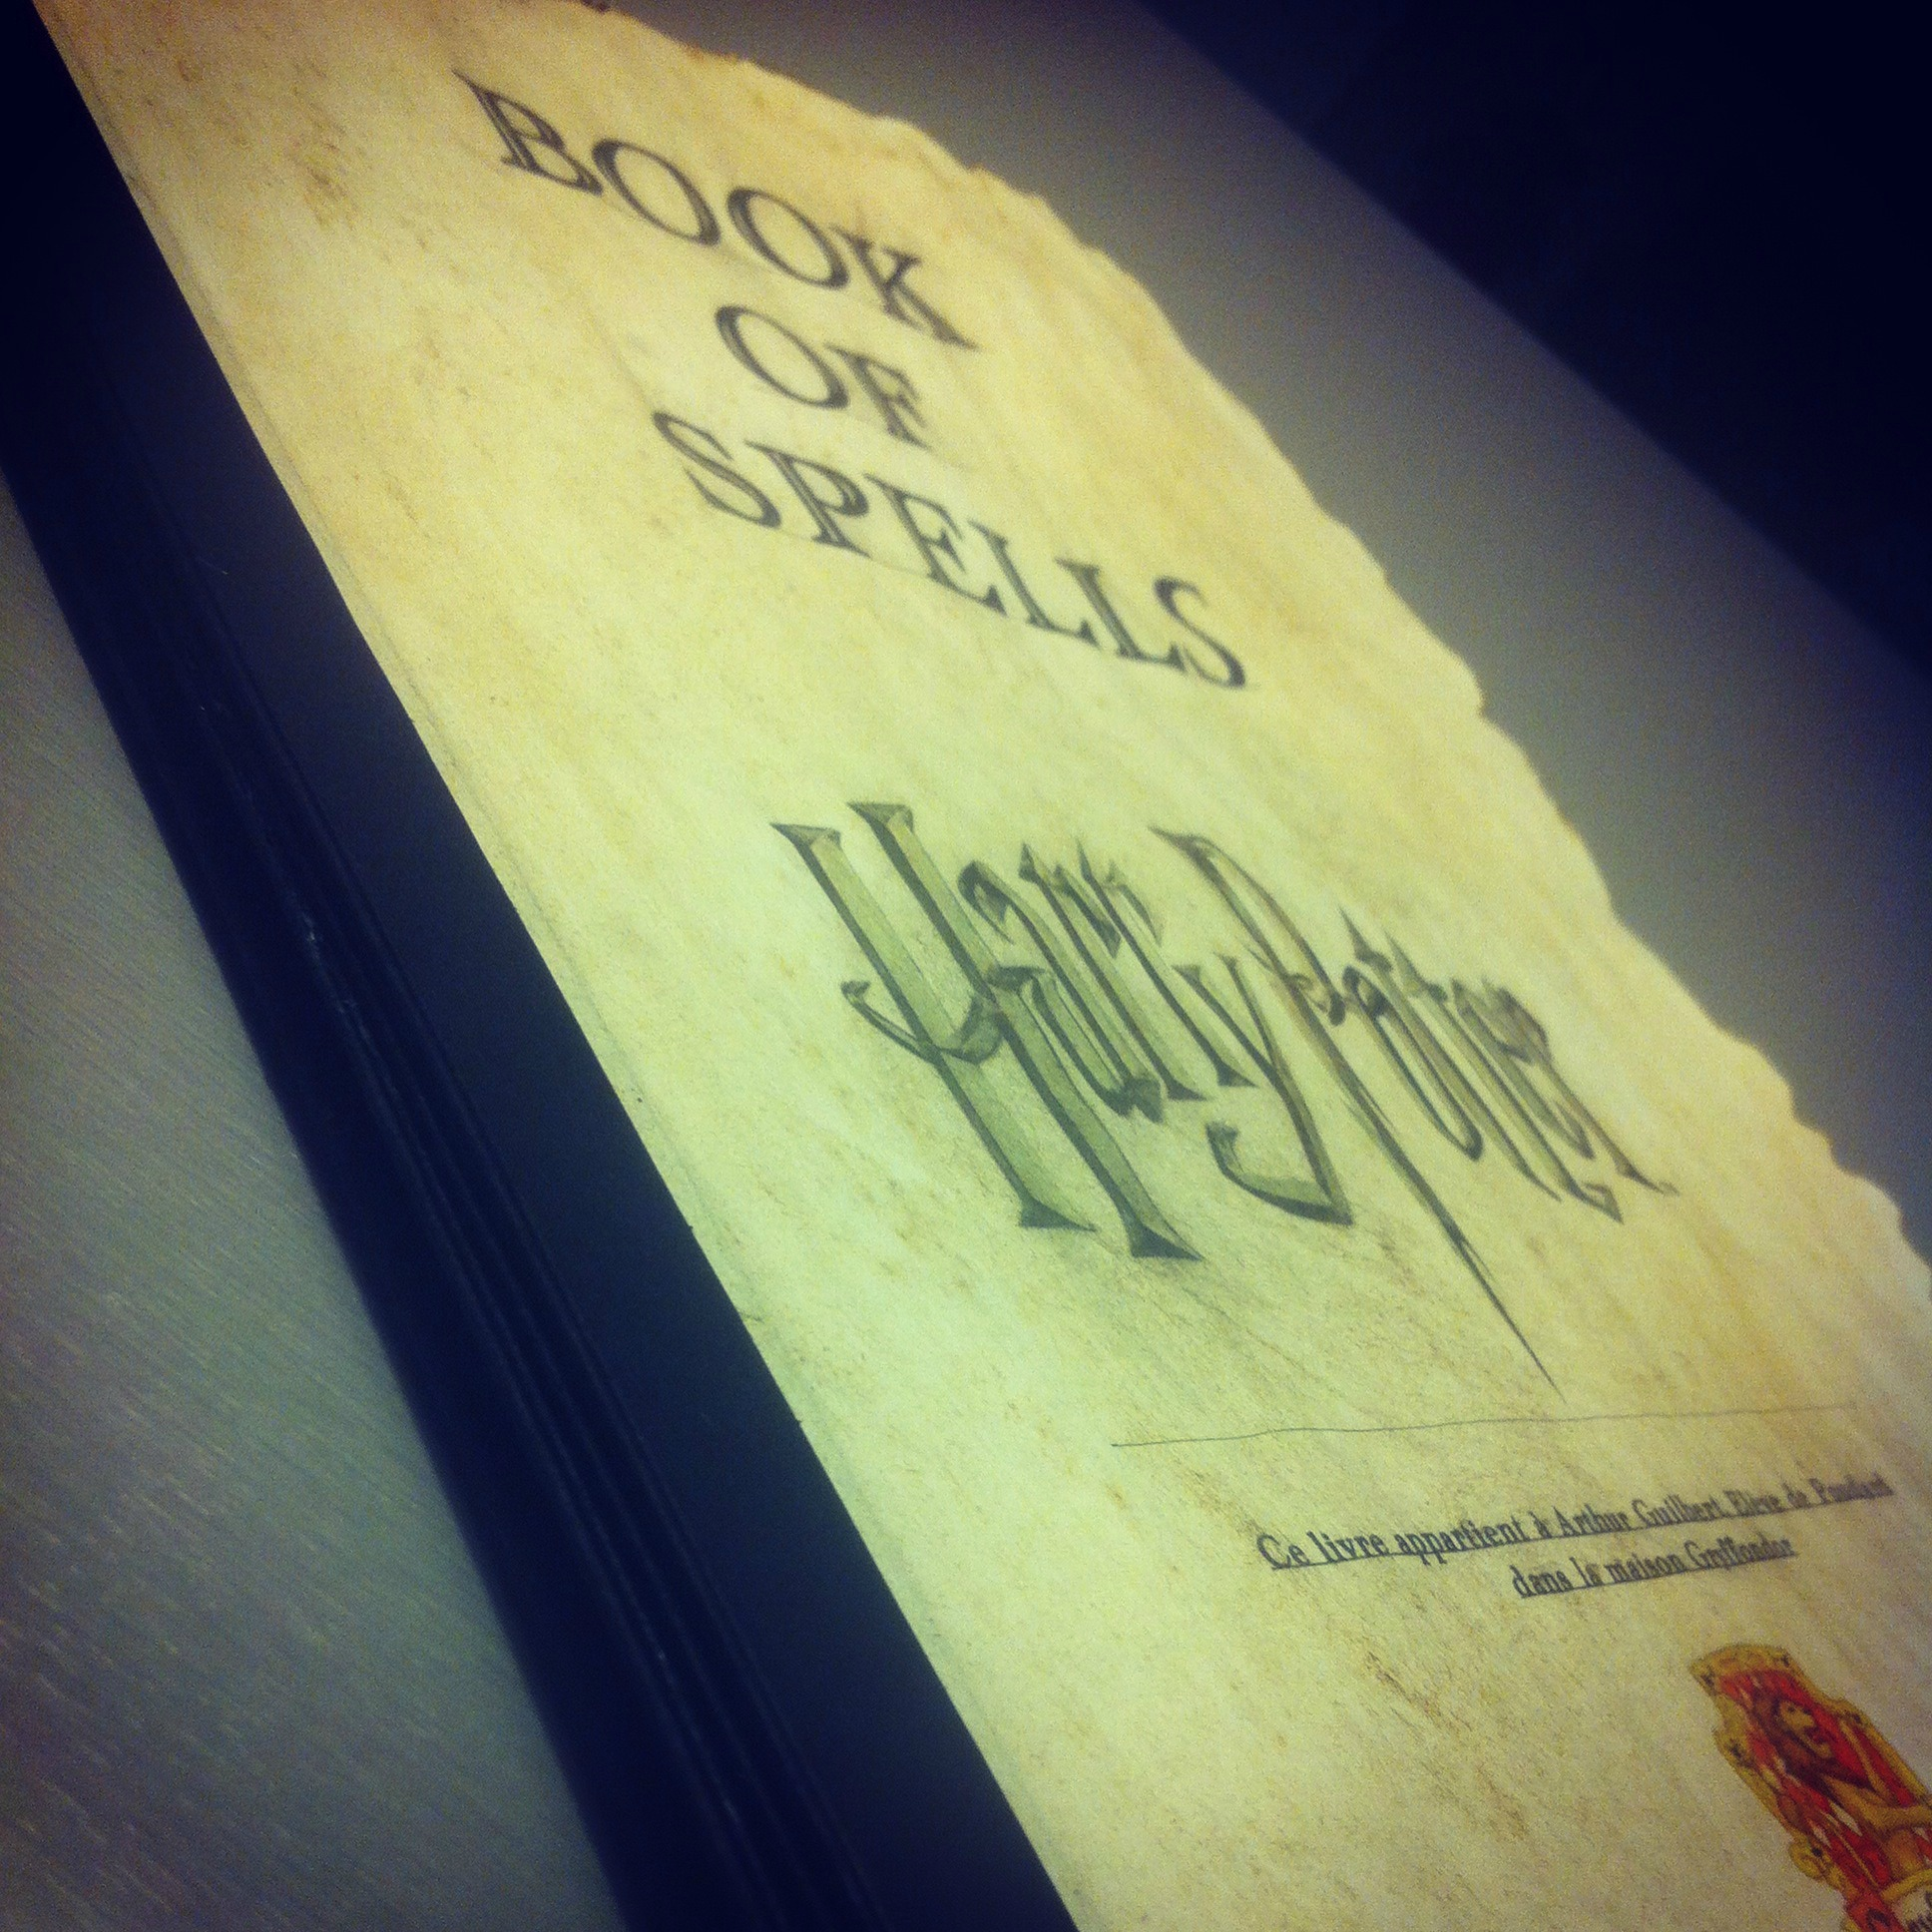 harry potter book of spells livre des sorts